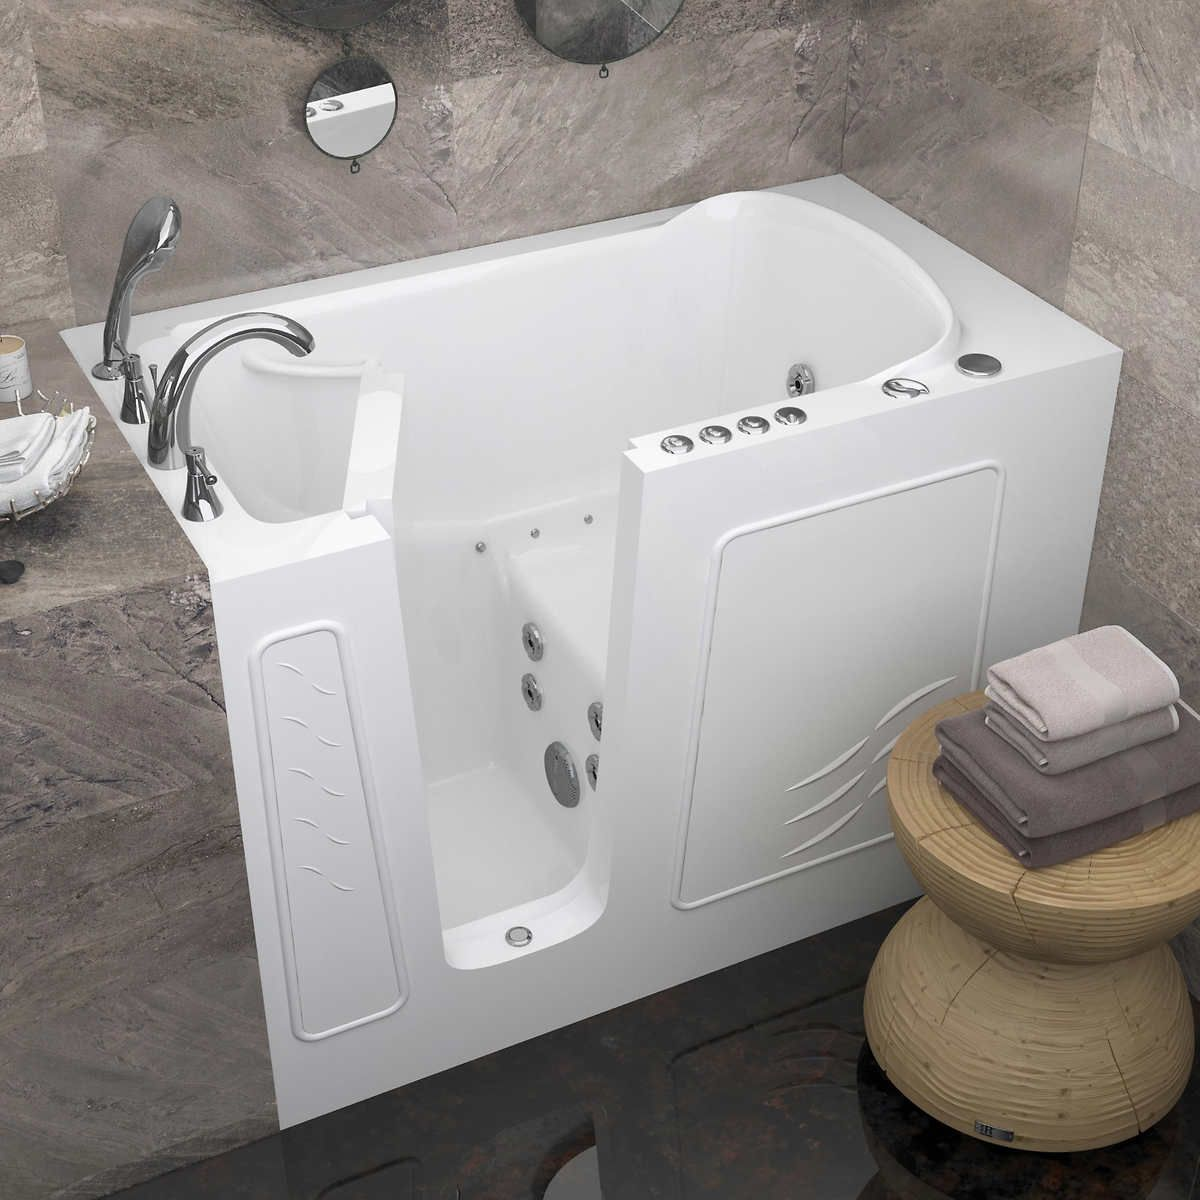 Access Tubs Walk-in Dual System Tub | bath | Pinterest | Tubs, Tap ...